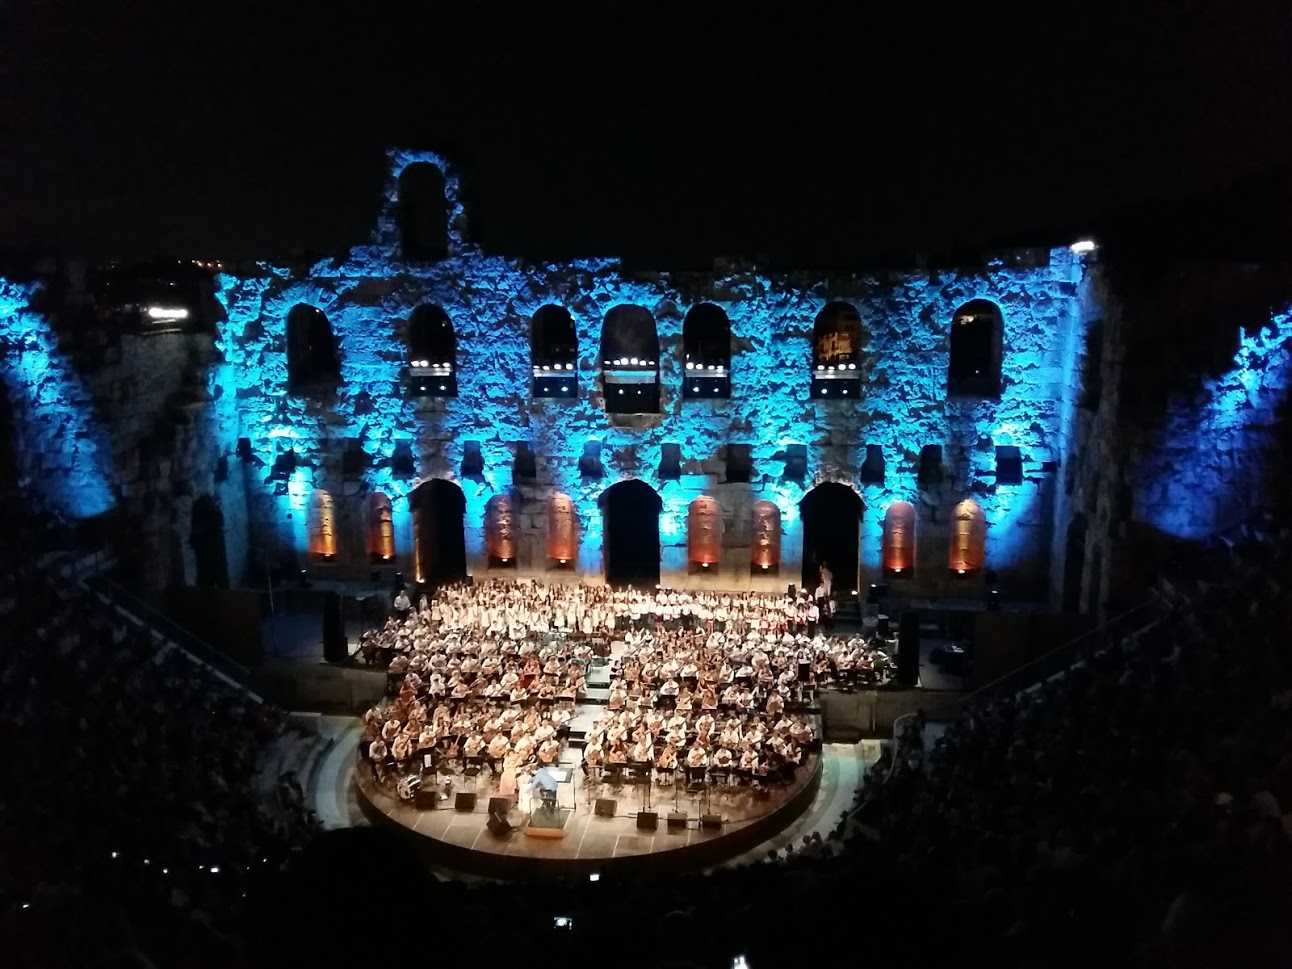 Seeing a performance inside the Herodion theatre in Athens Greece